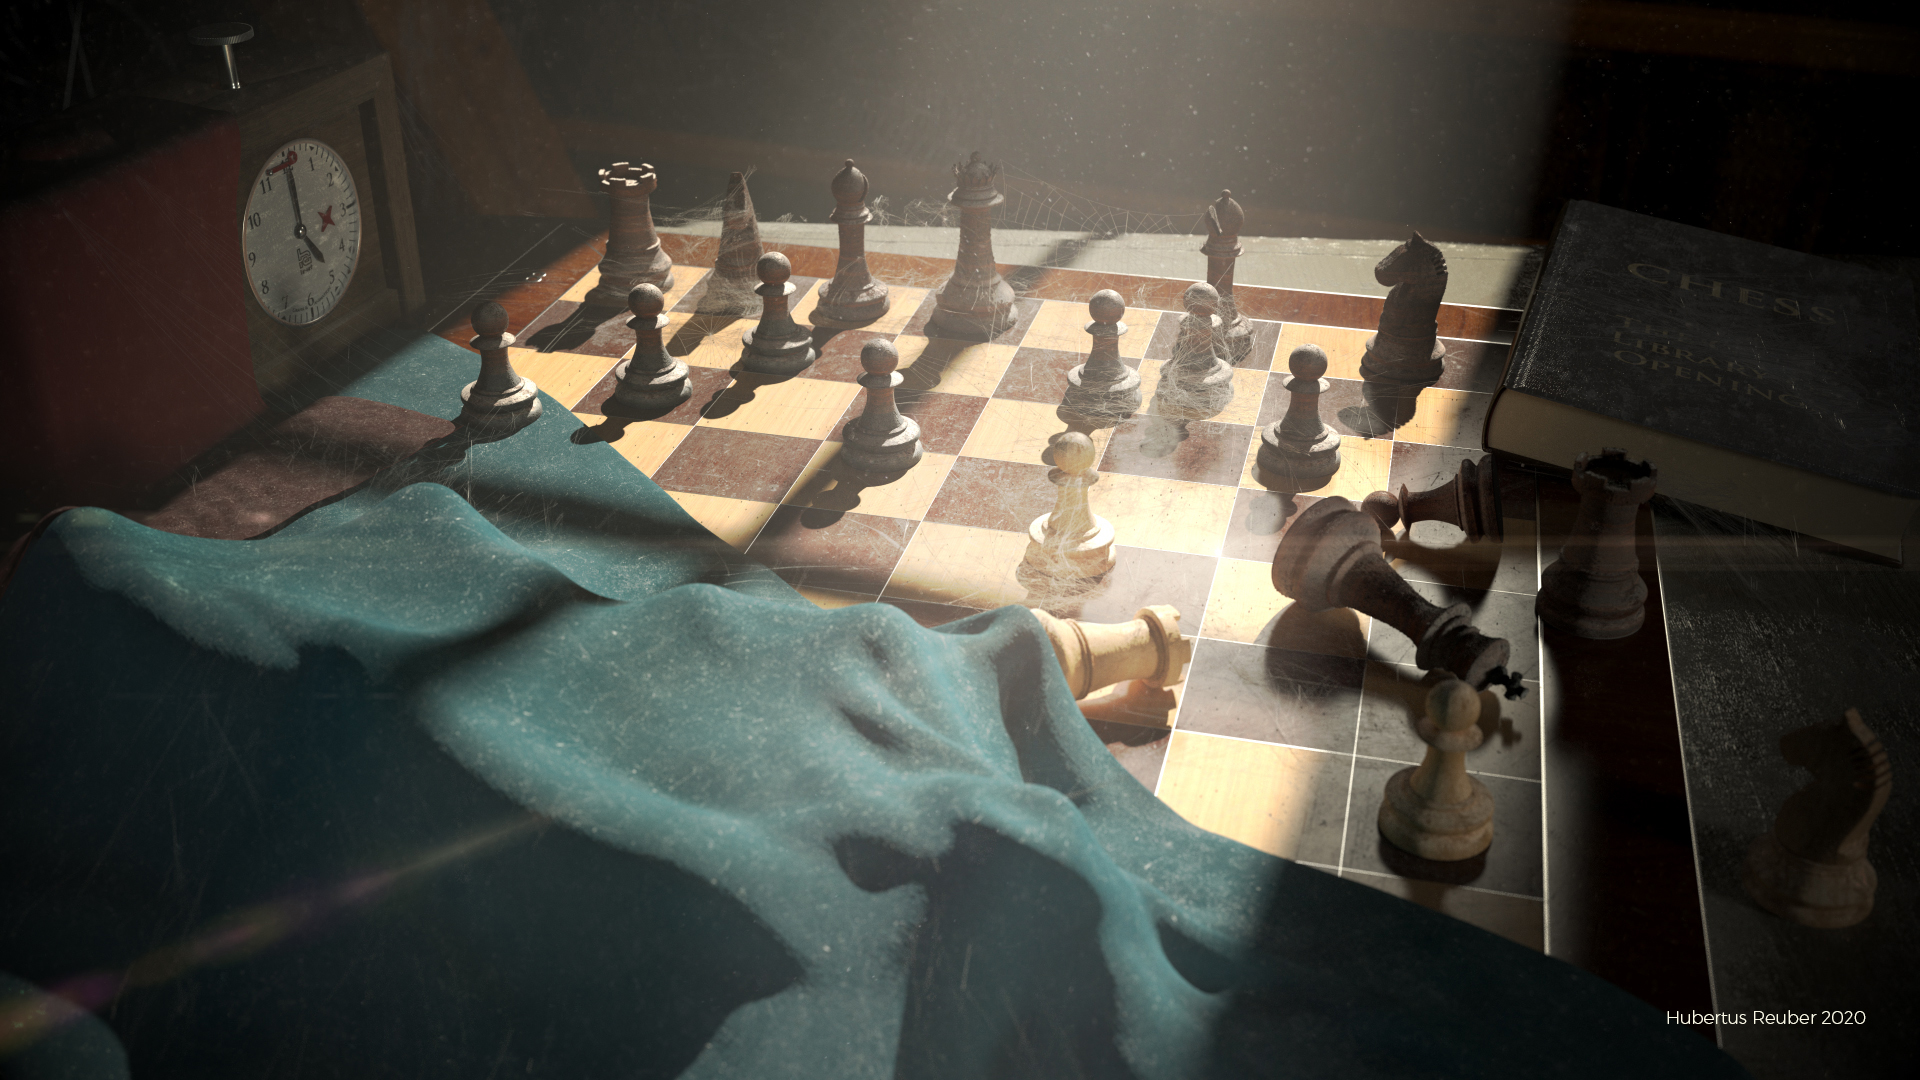 Forgotten Games: Chess